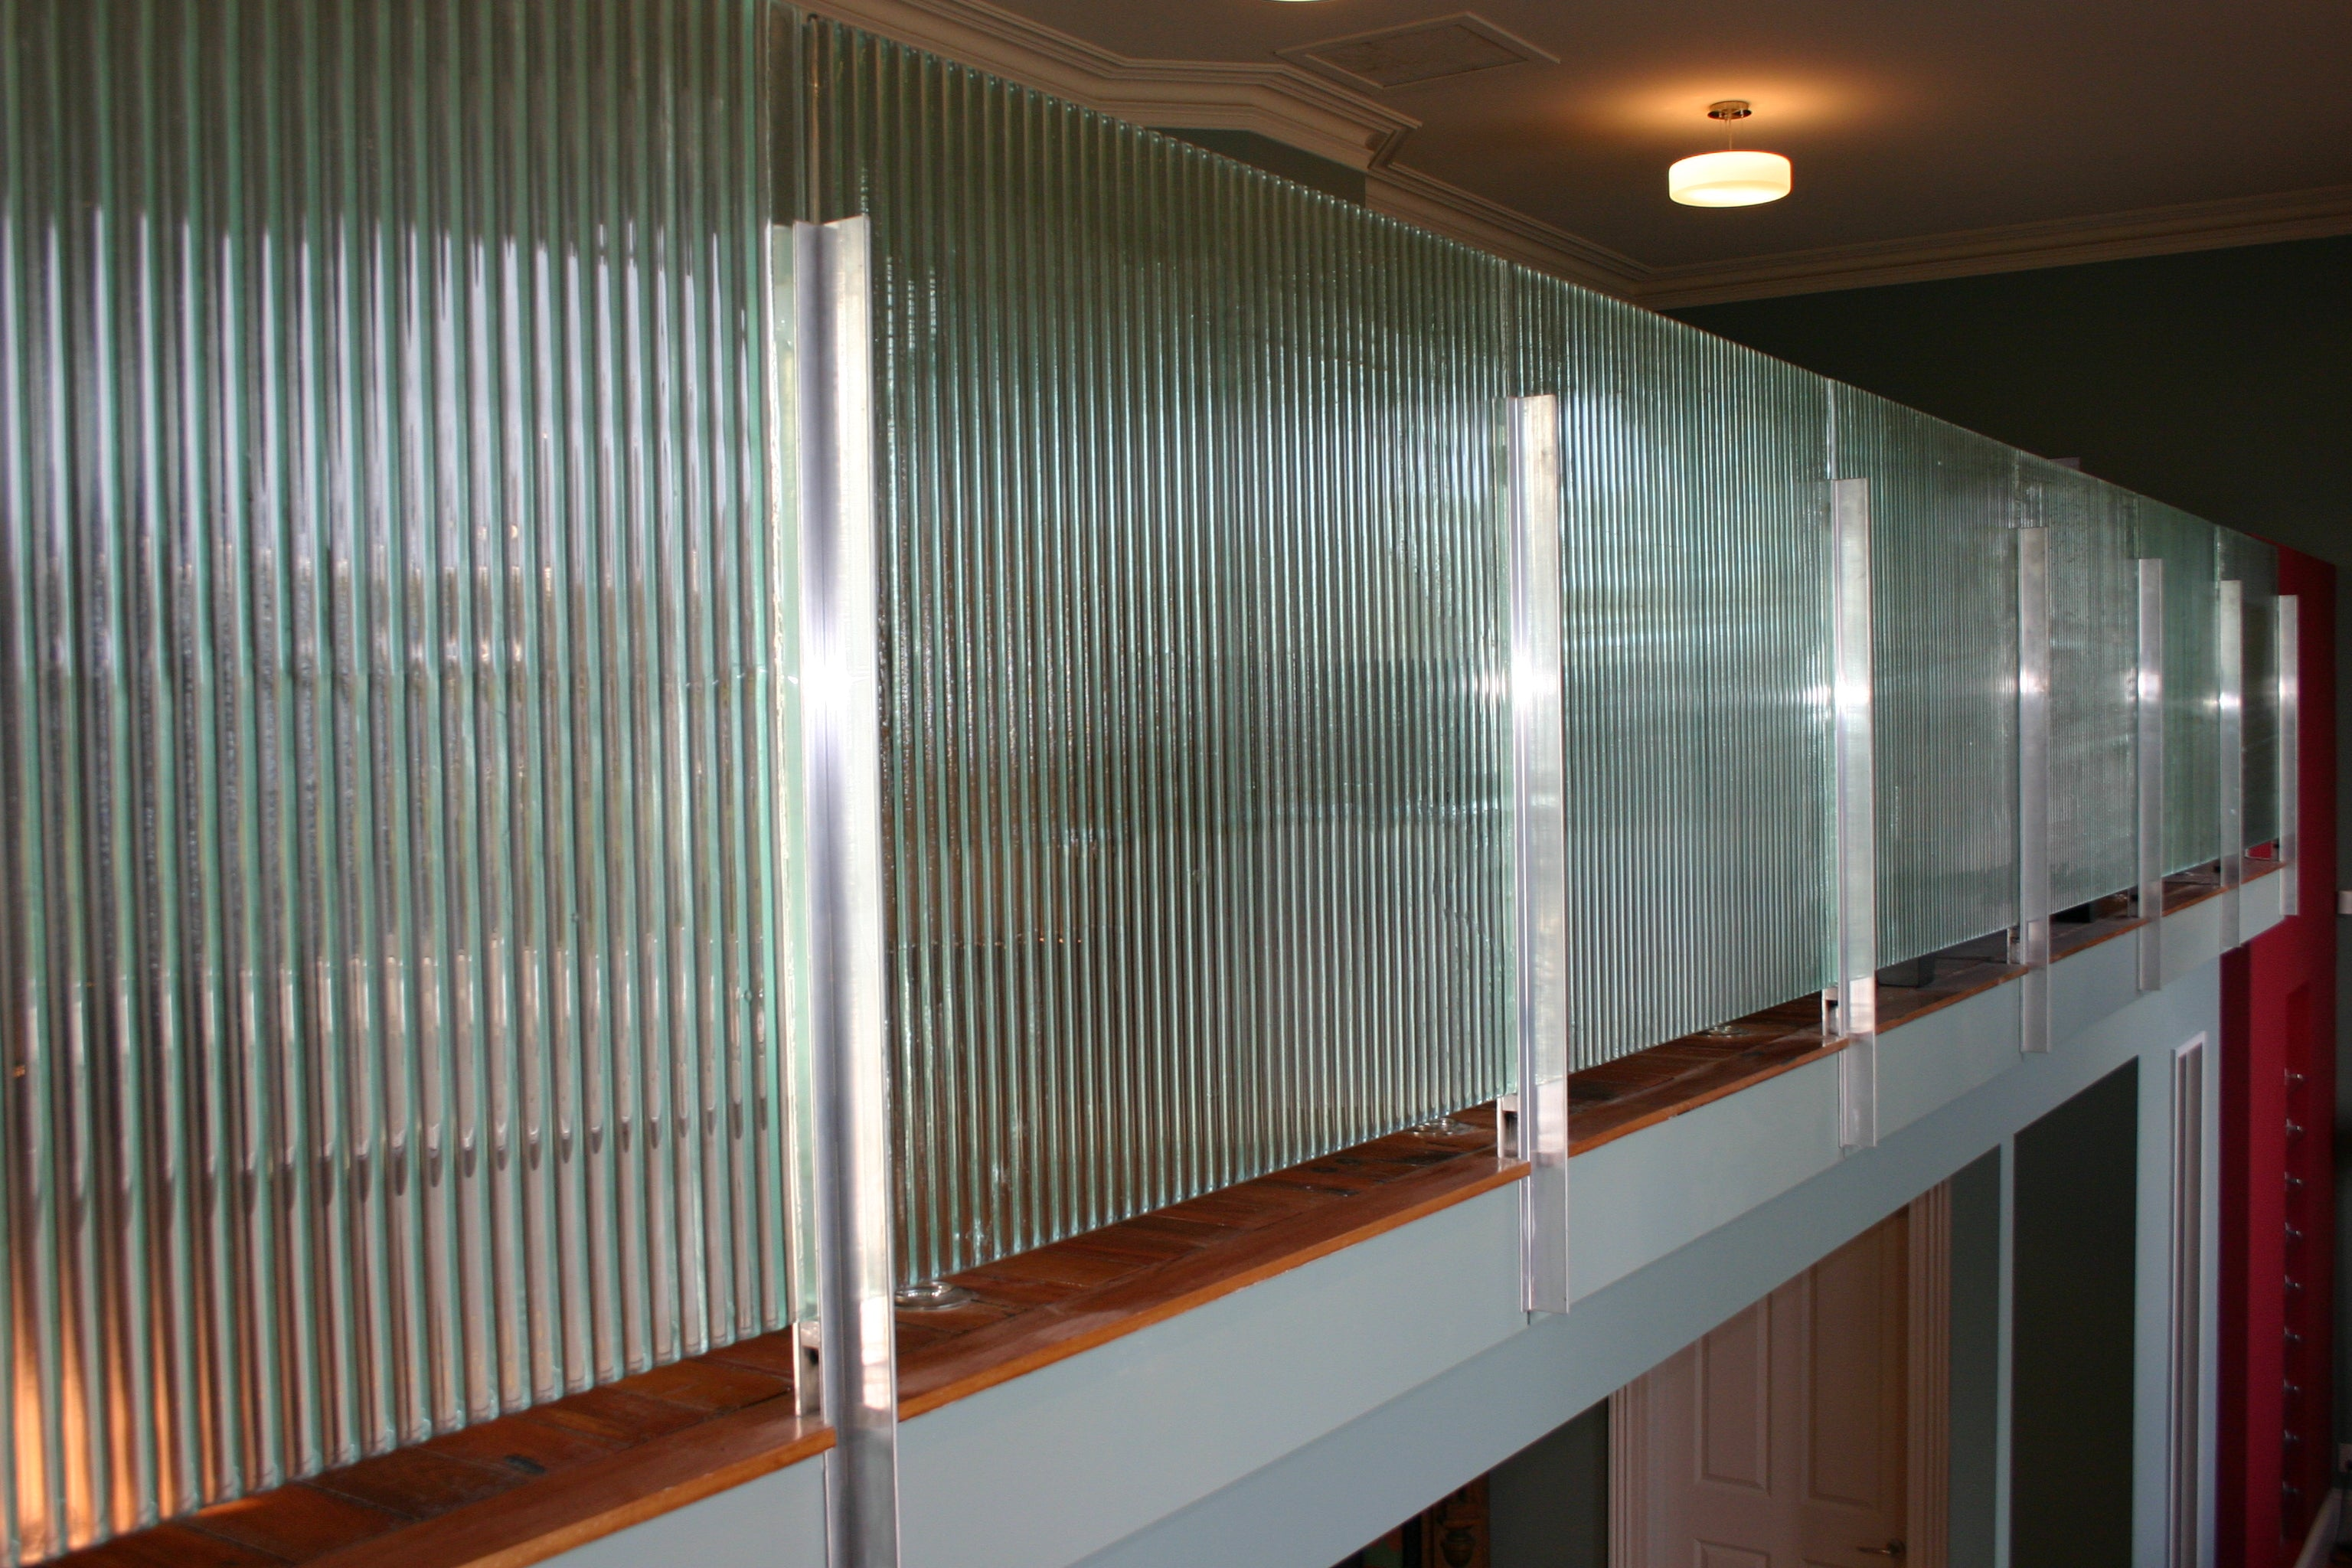 broad reeded fluted patterned slumped textured handmade glass in corrugate balustrading